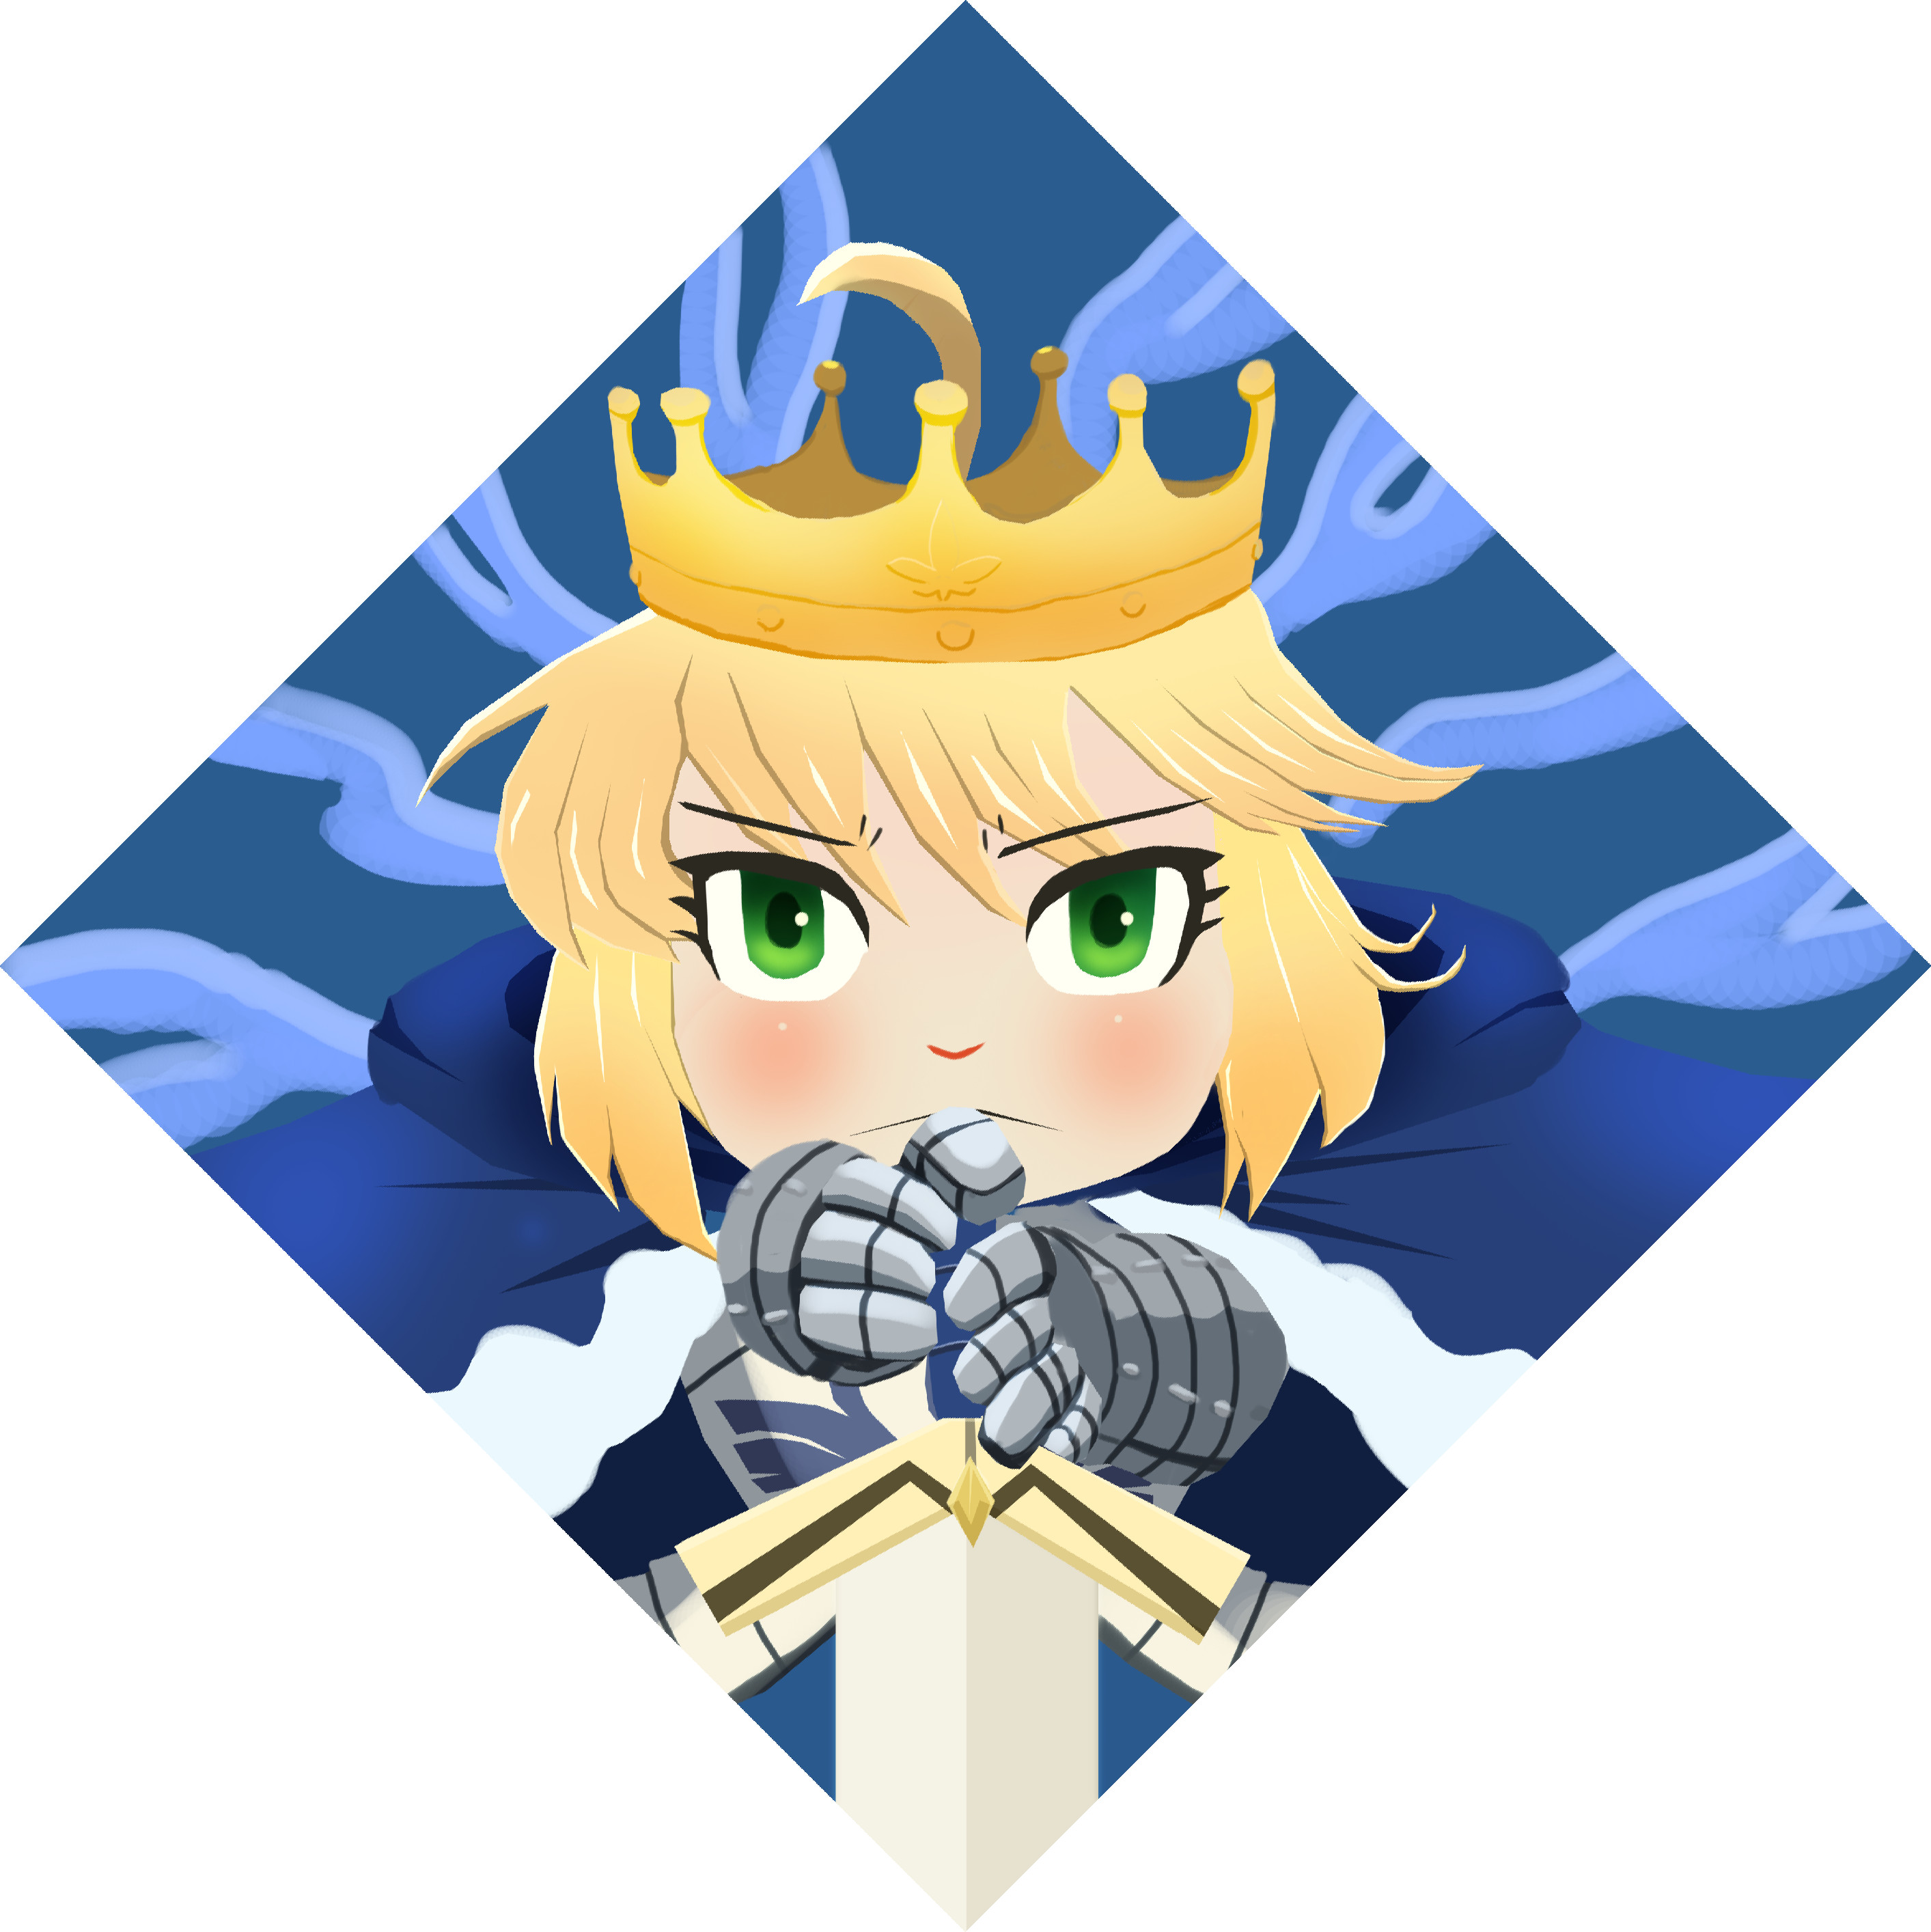 Old Saber painting